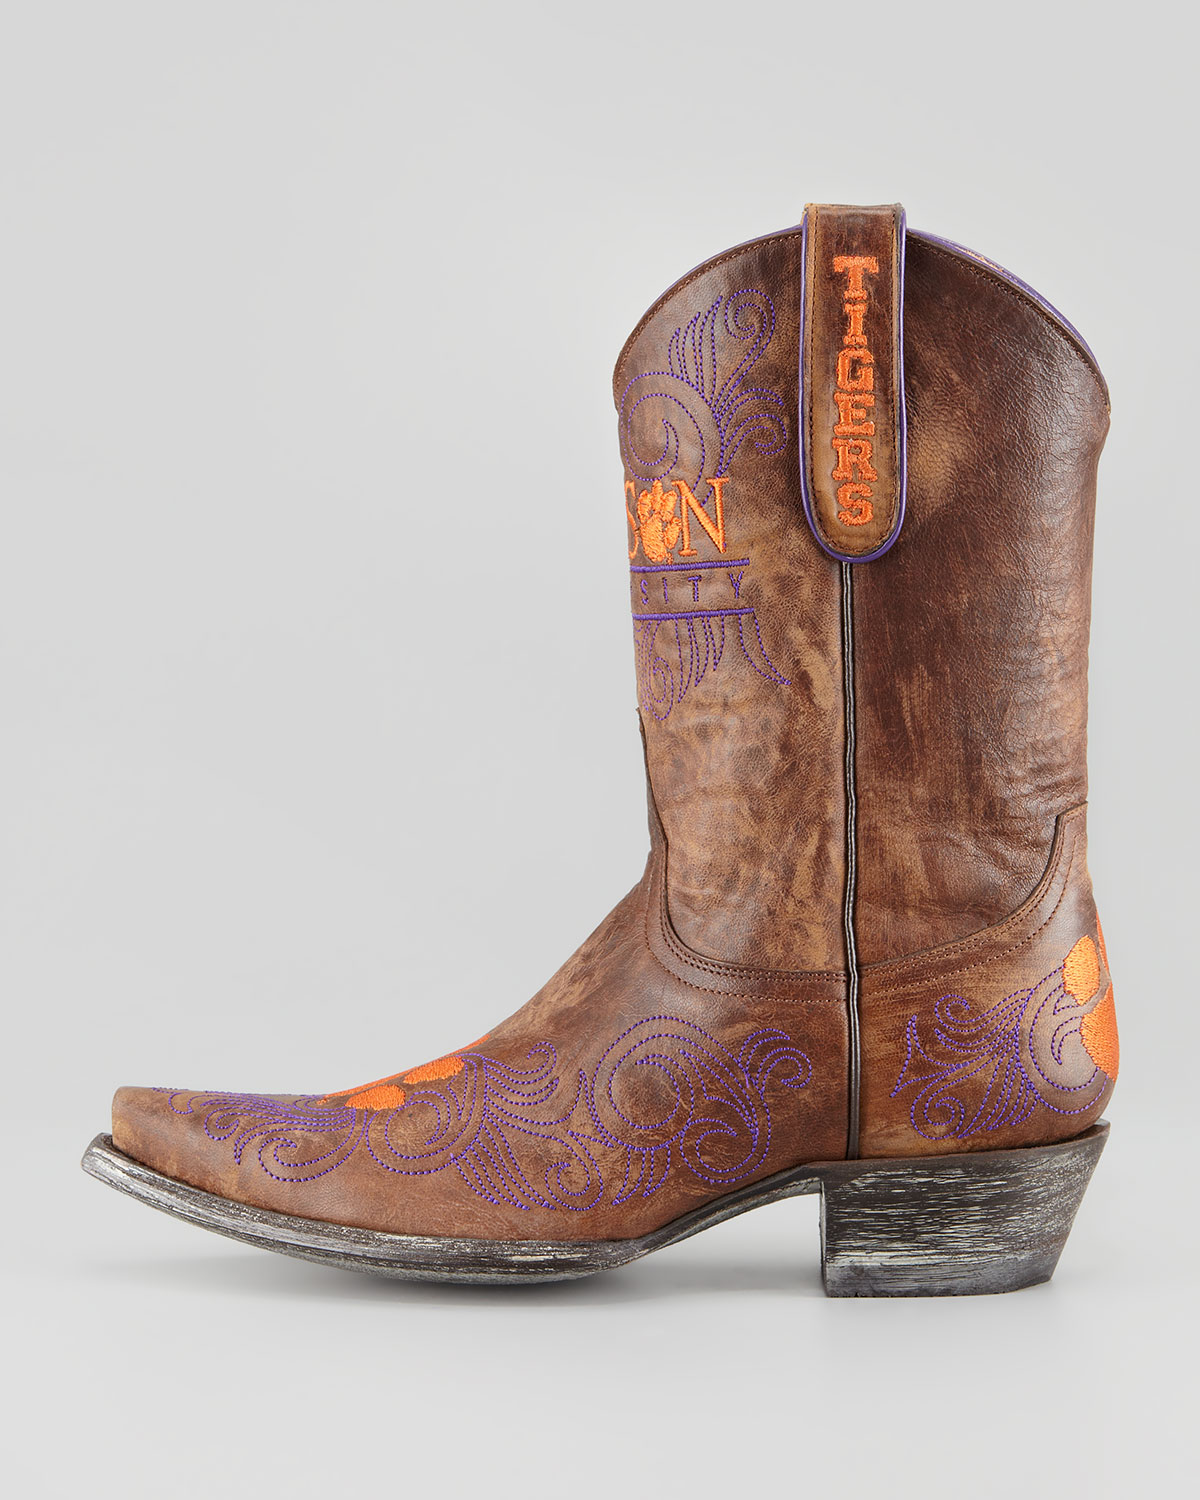 Lyst Gameday Boot Company Clemson Short Gameday Boots In